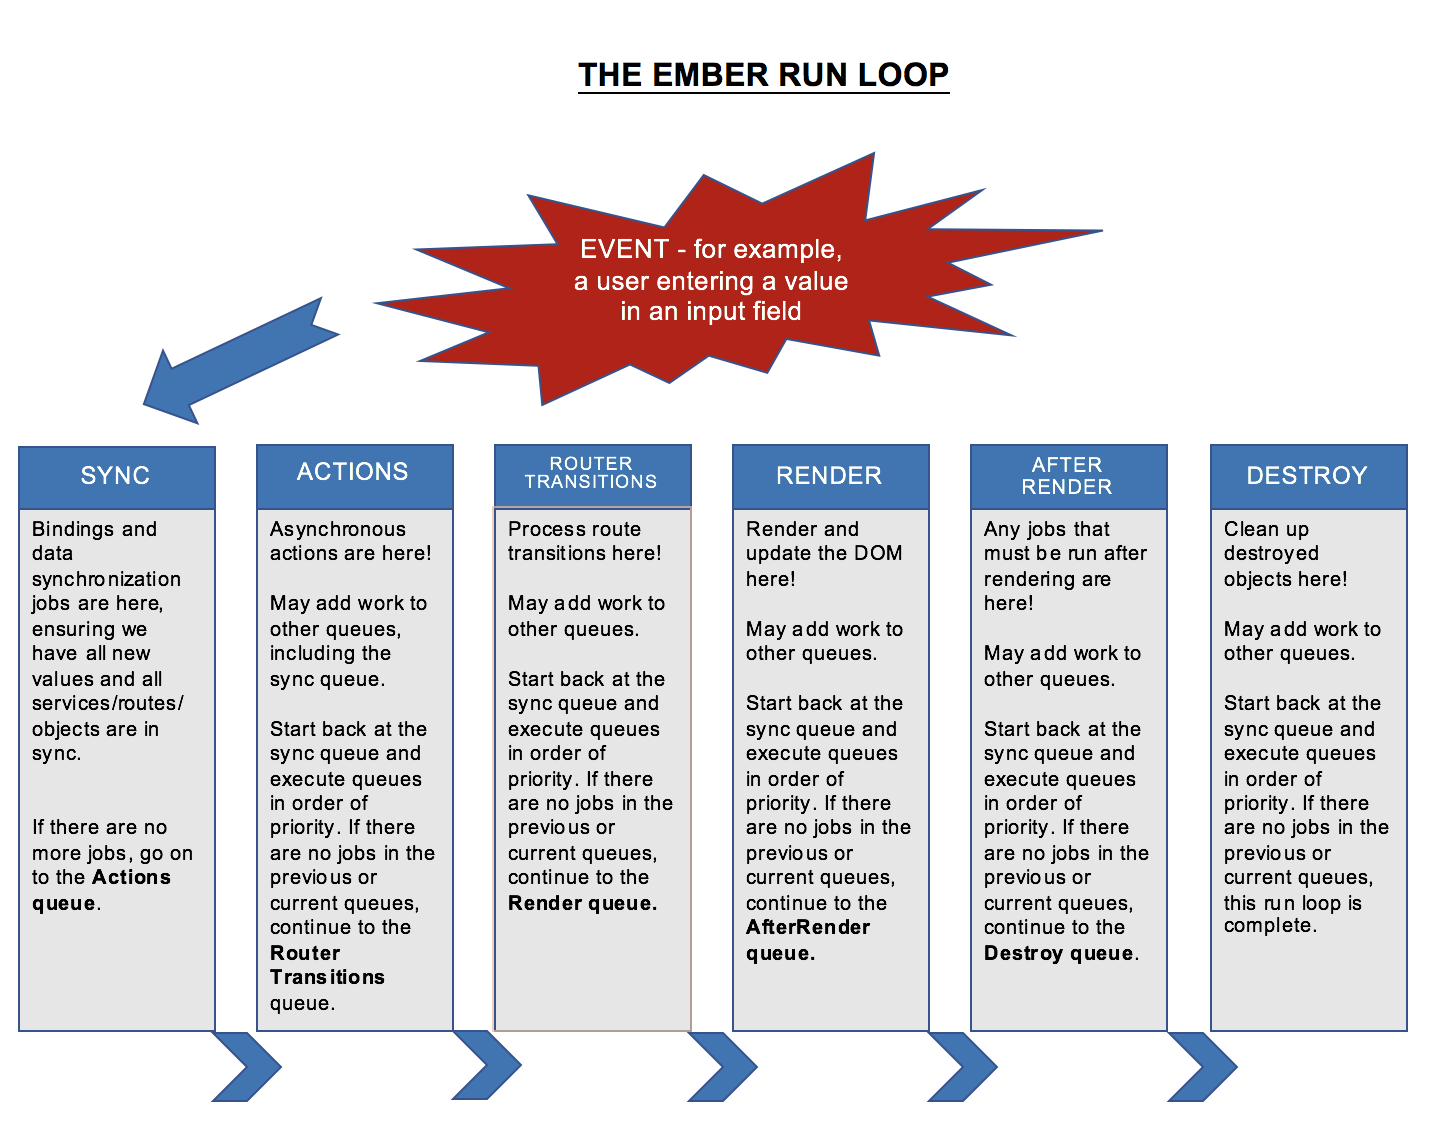 Flowchart: The Ember Run Loop, Illustrated. [Link to plaintext version of chart.](https://gist.githubusercontent.com/arieljackson/295a09a02678d2c8502f04fc57dfa9bc/raw/ffd704668f7037bbdd494461a4d2b8163017cffe/ember_run_loop_flowchart.txt)